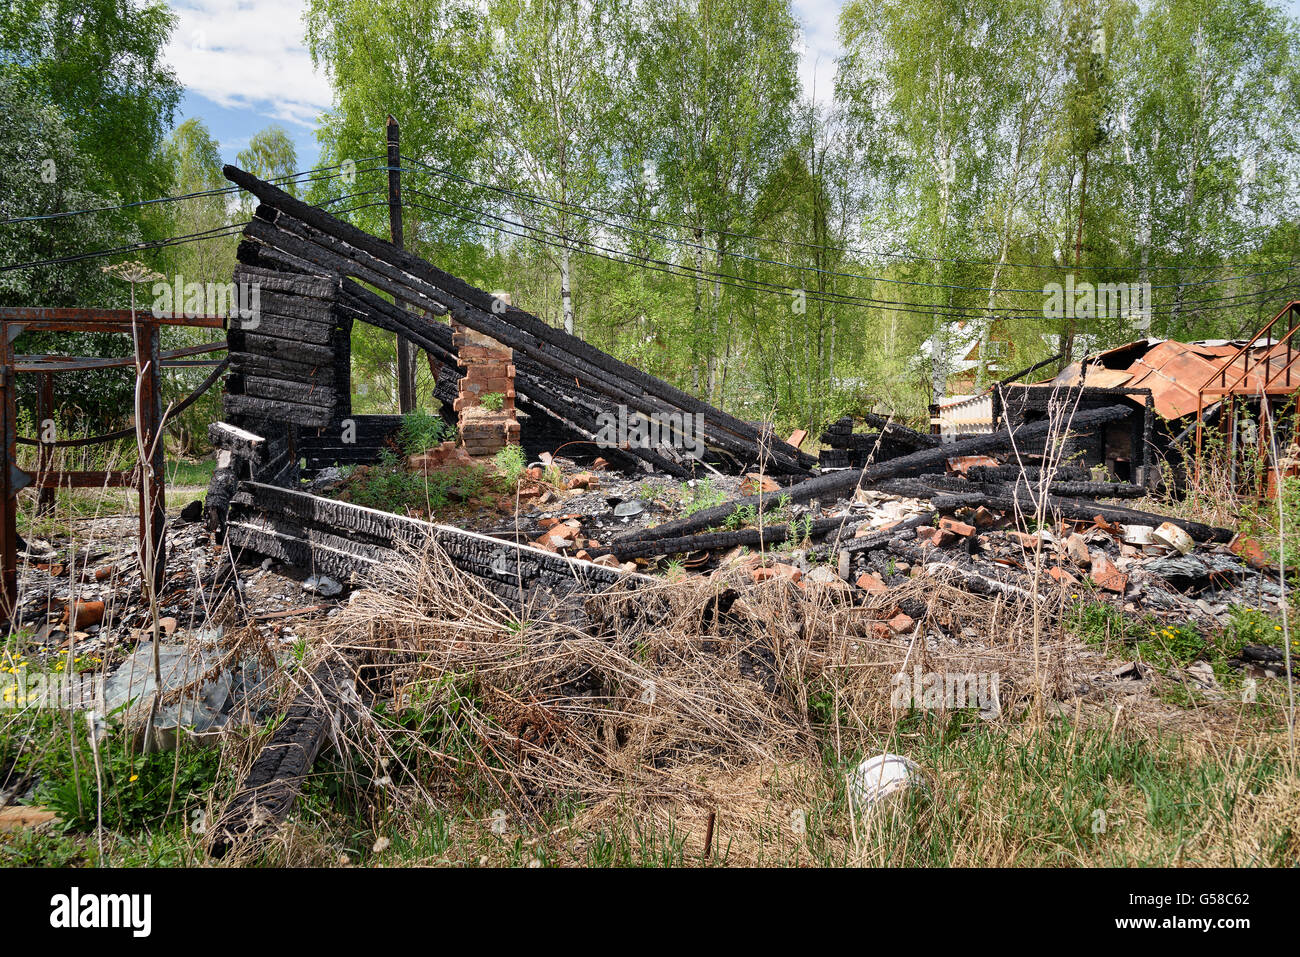 Remains of burned down house in the village - Stock Image